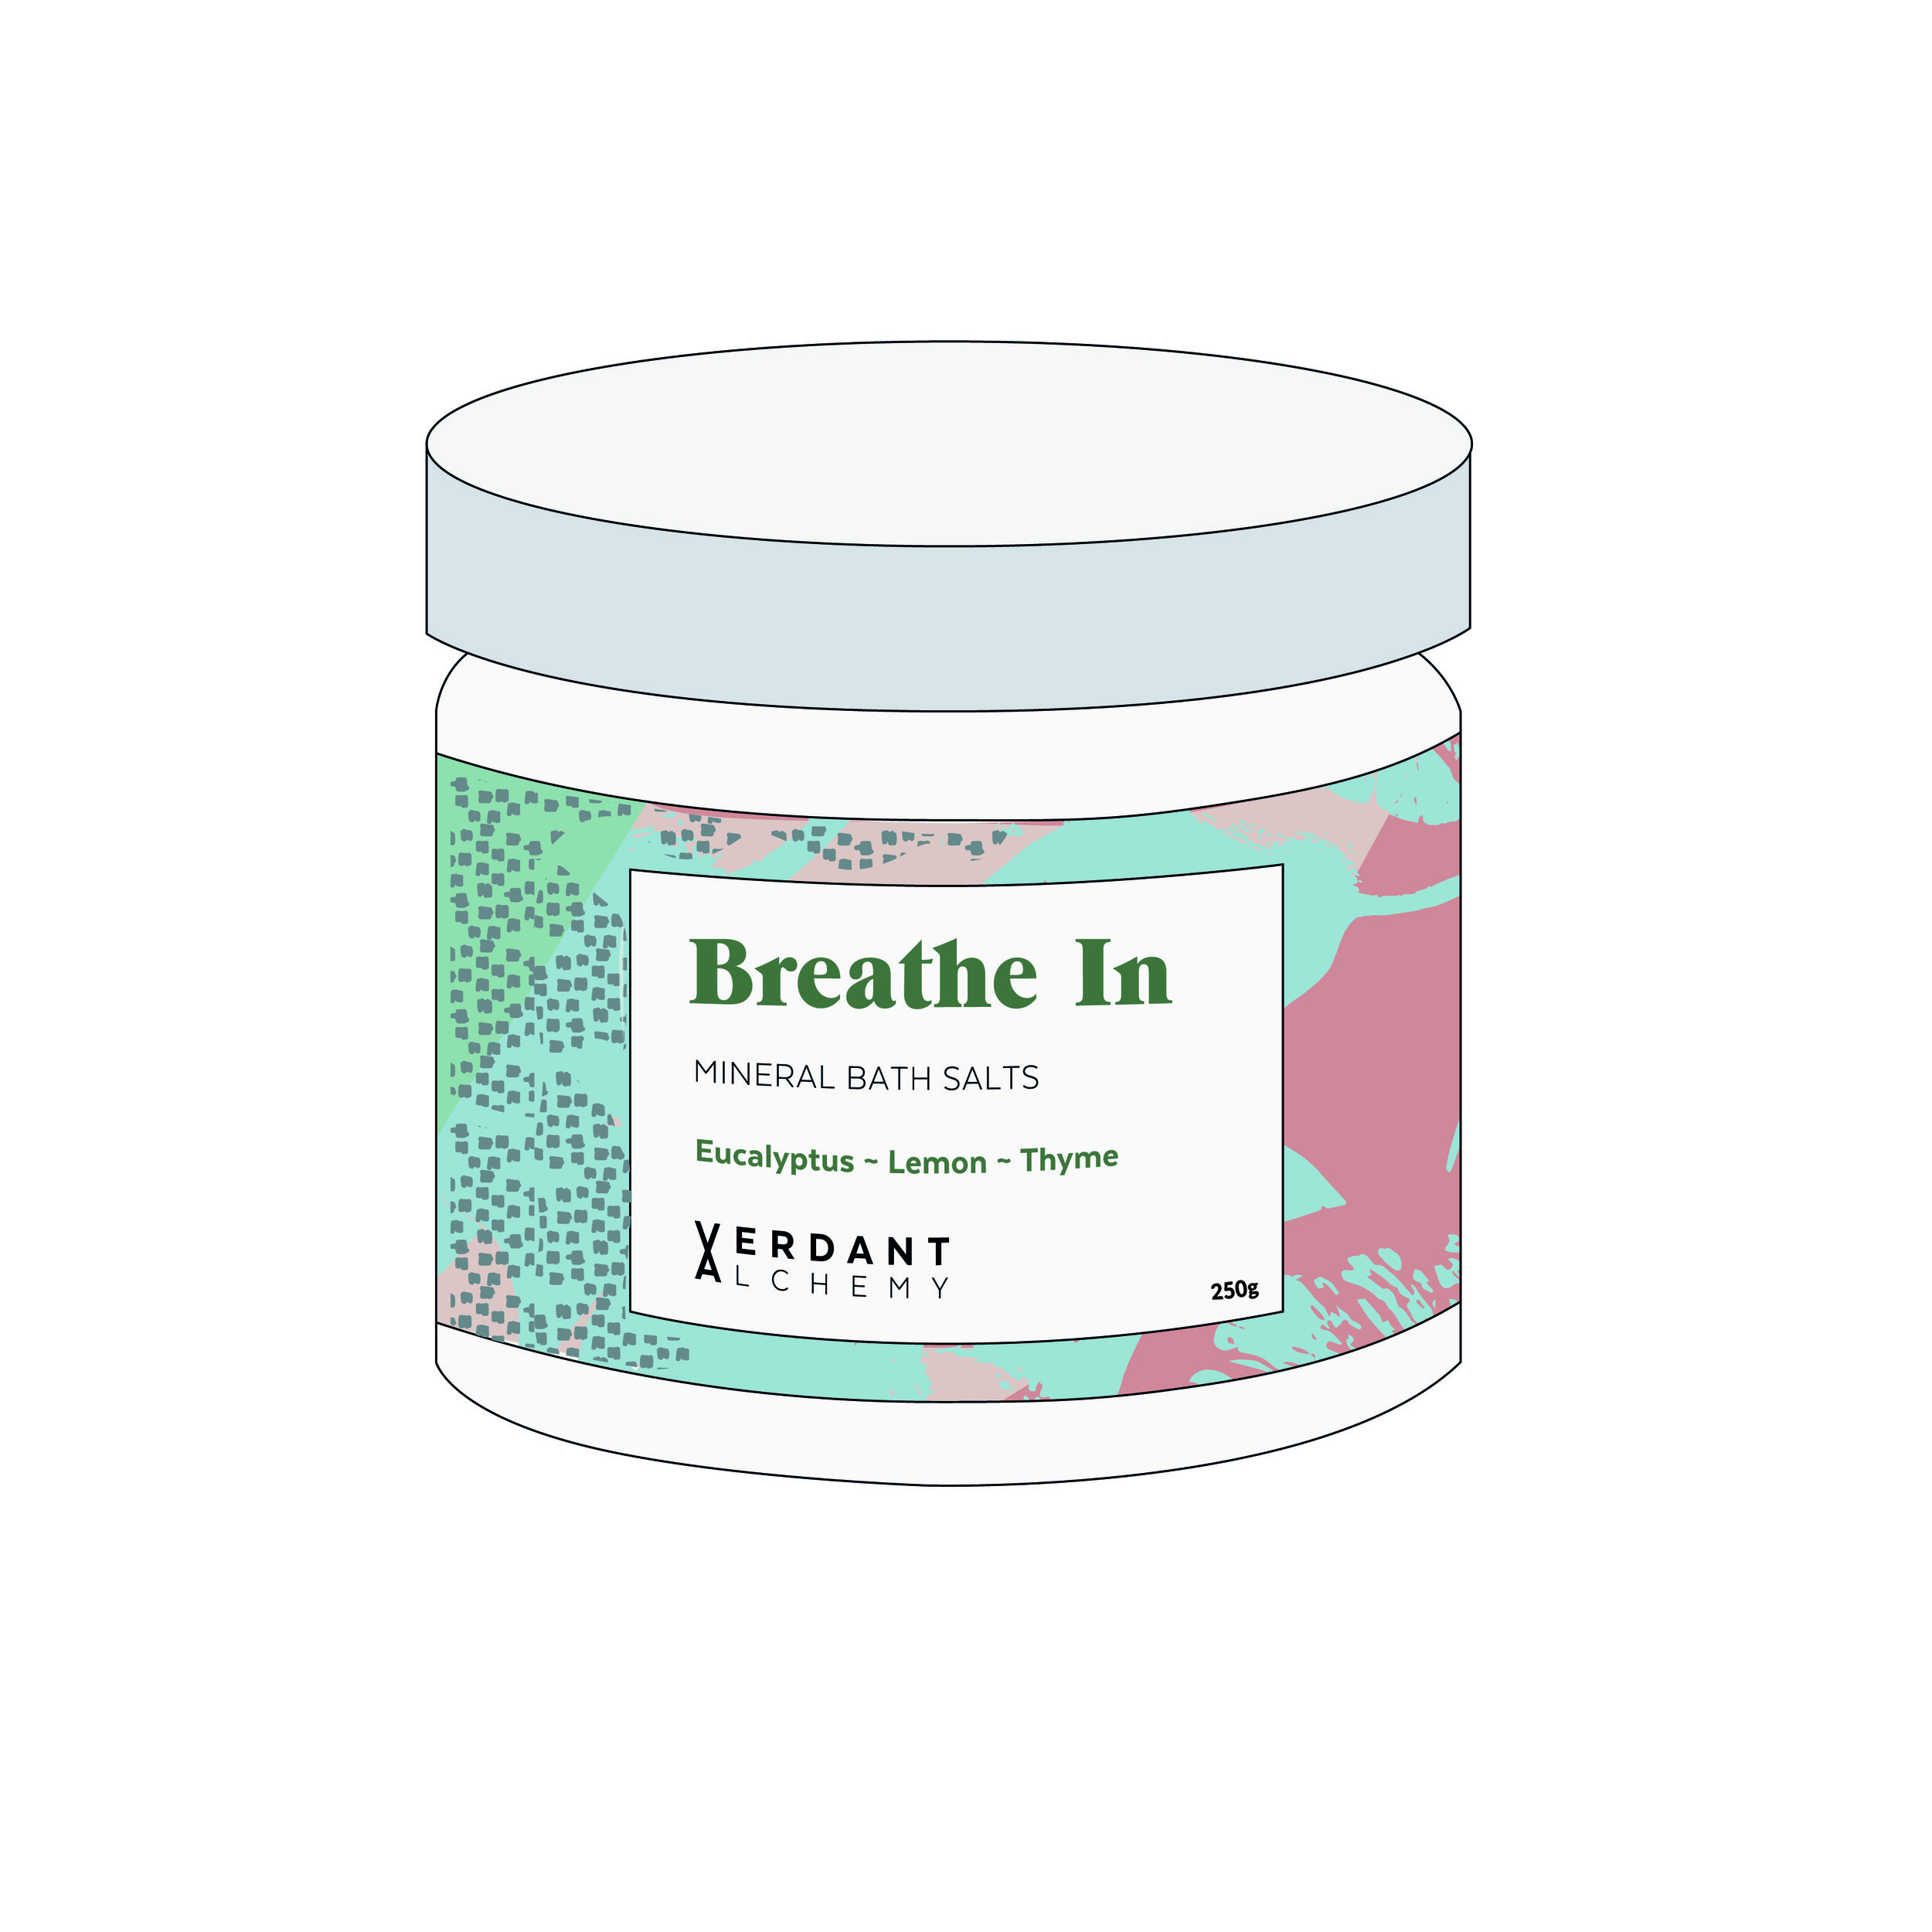 breathe in mineral bath salts 250g -01.jpg